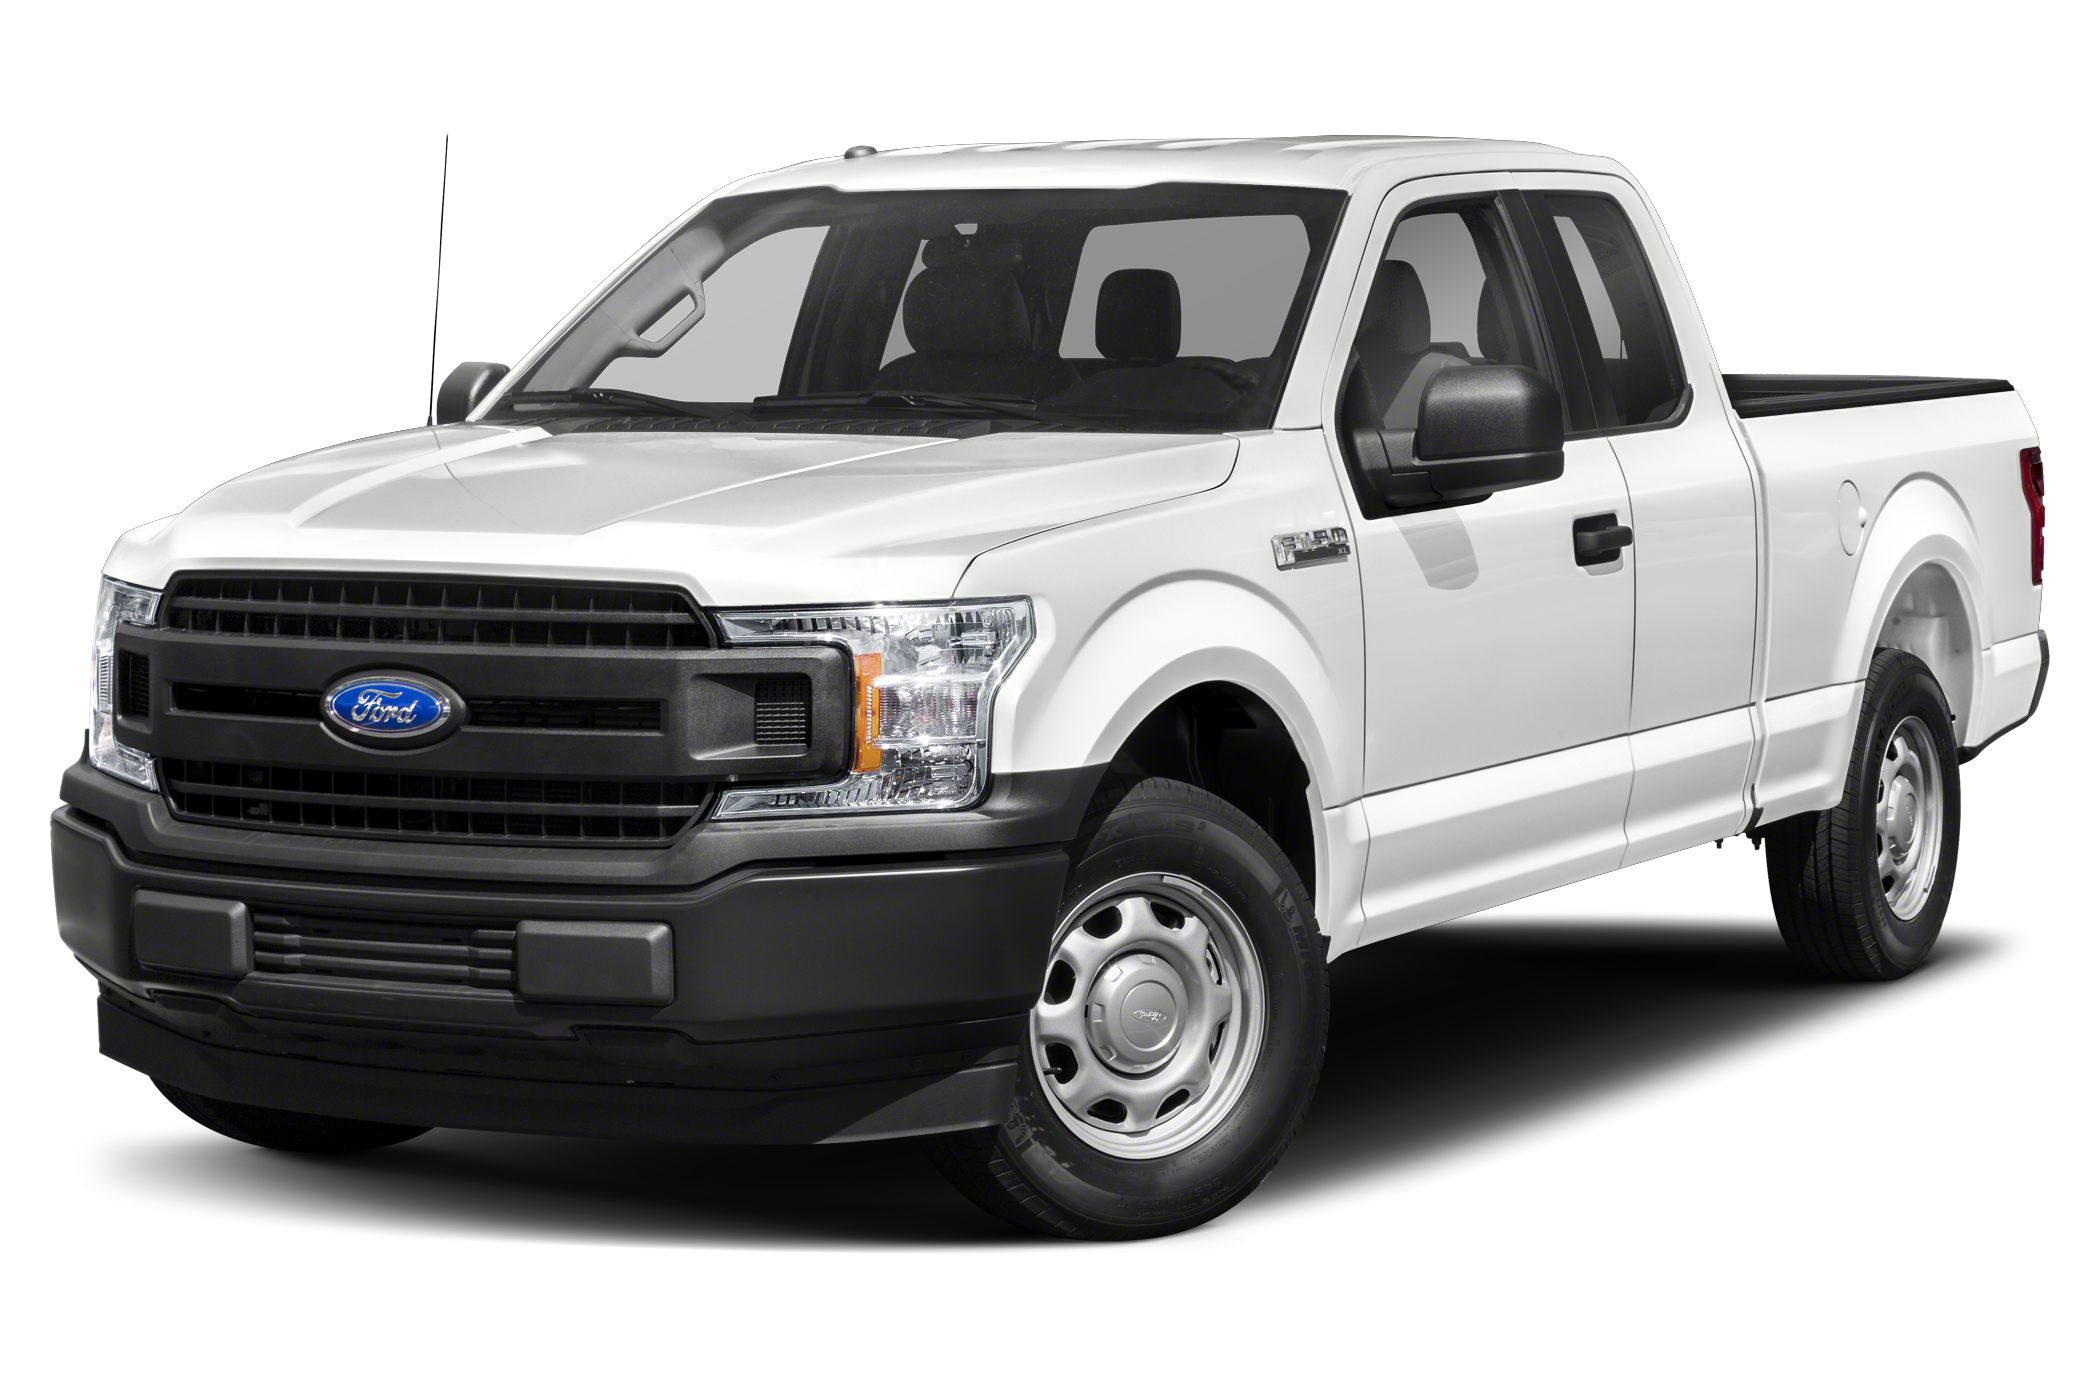 2019 Ford F-150 XL 4x2 SuperCab Styleside 8 ft. box 163 in. WB